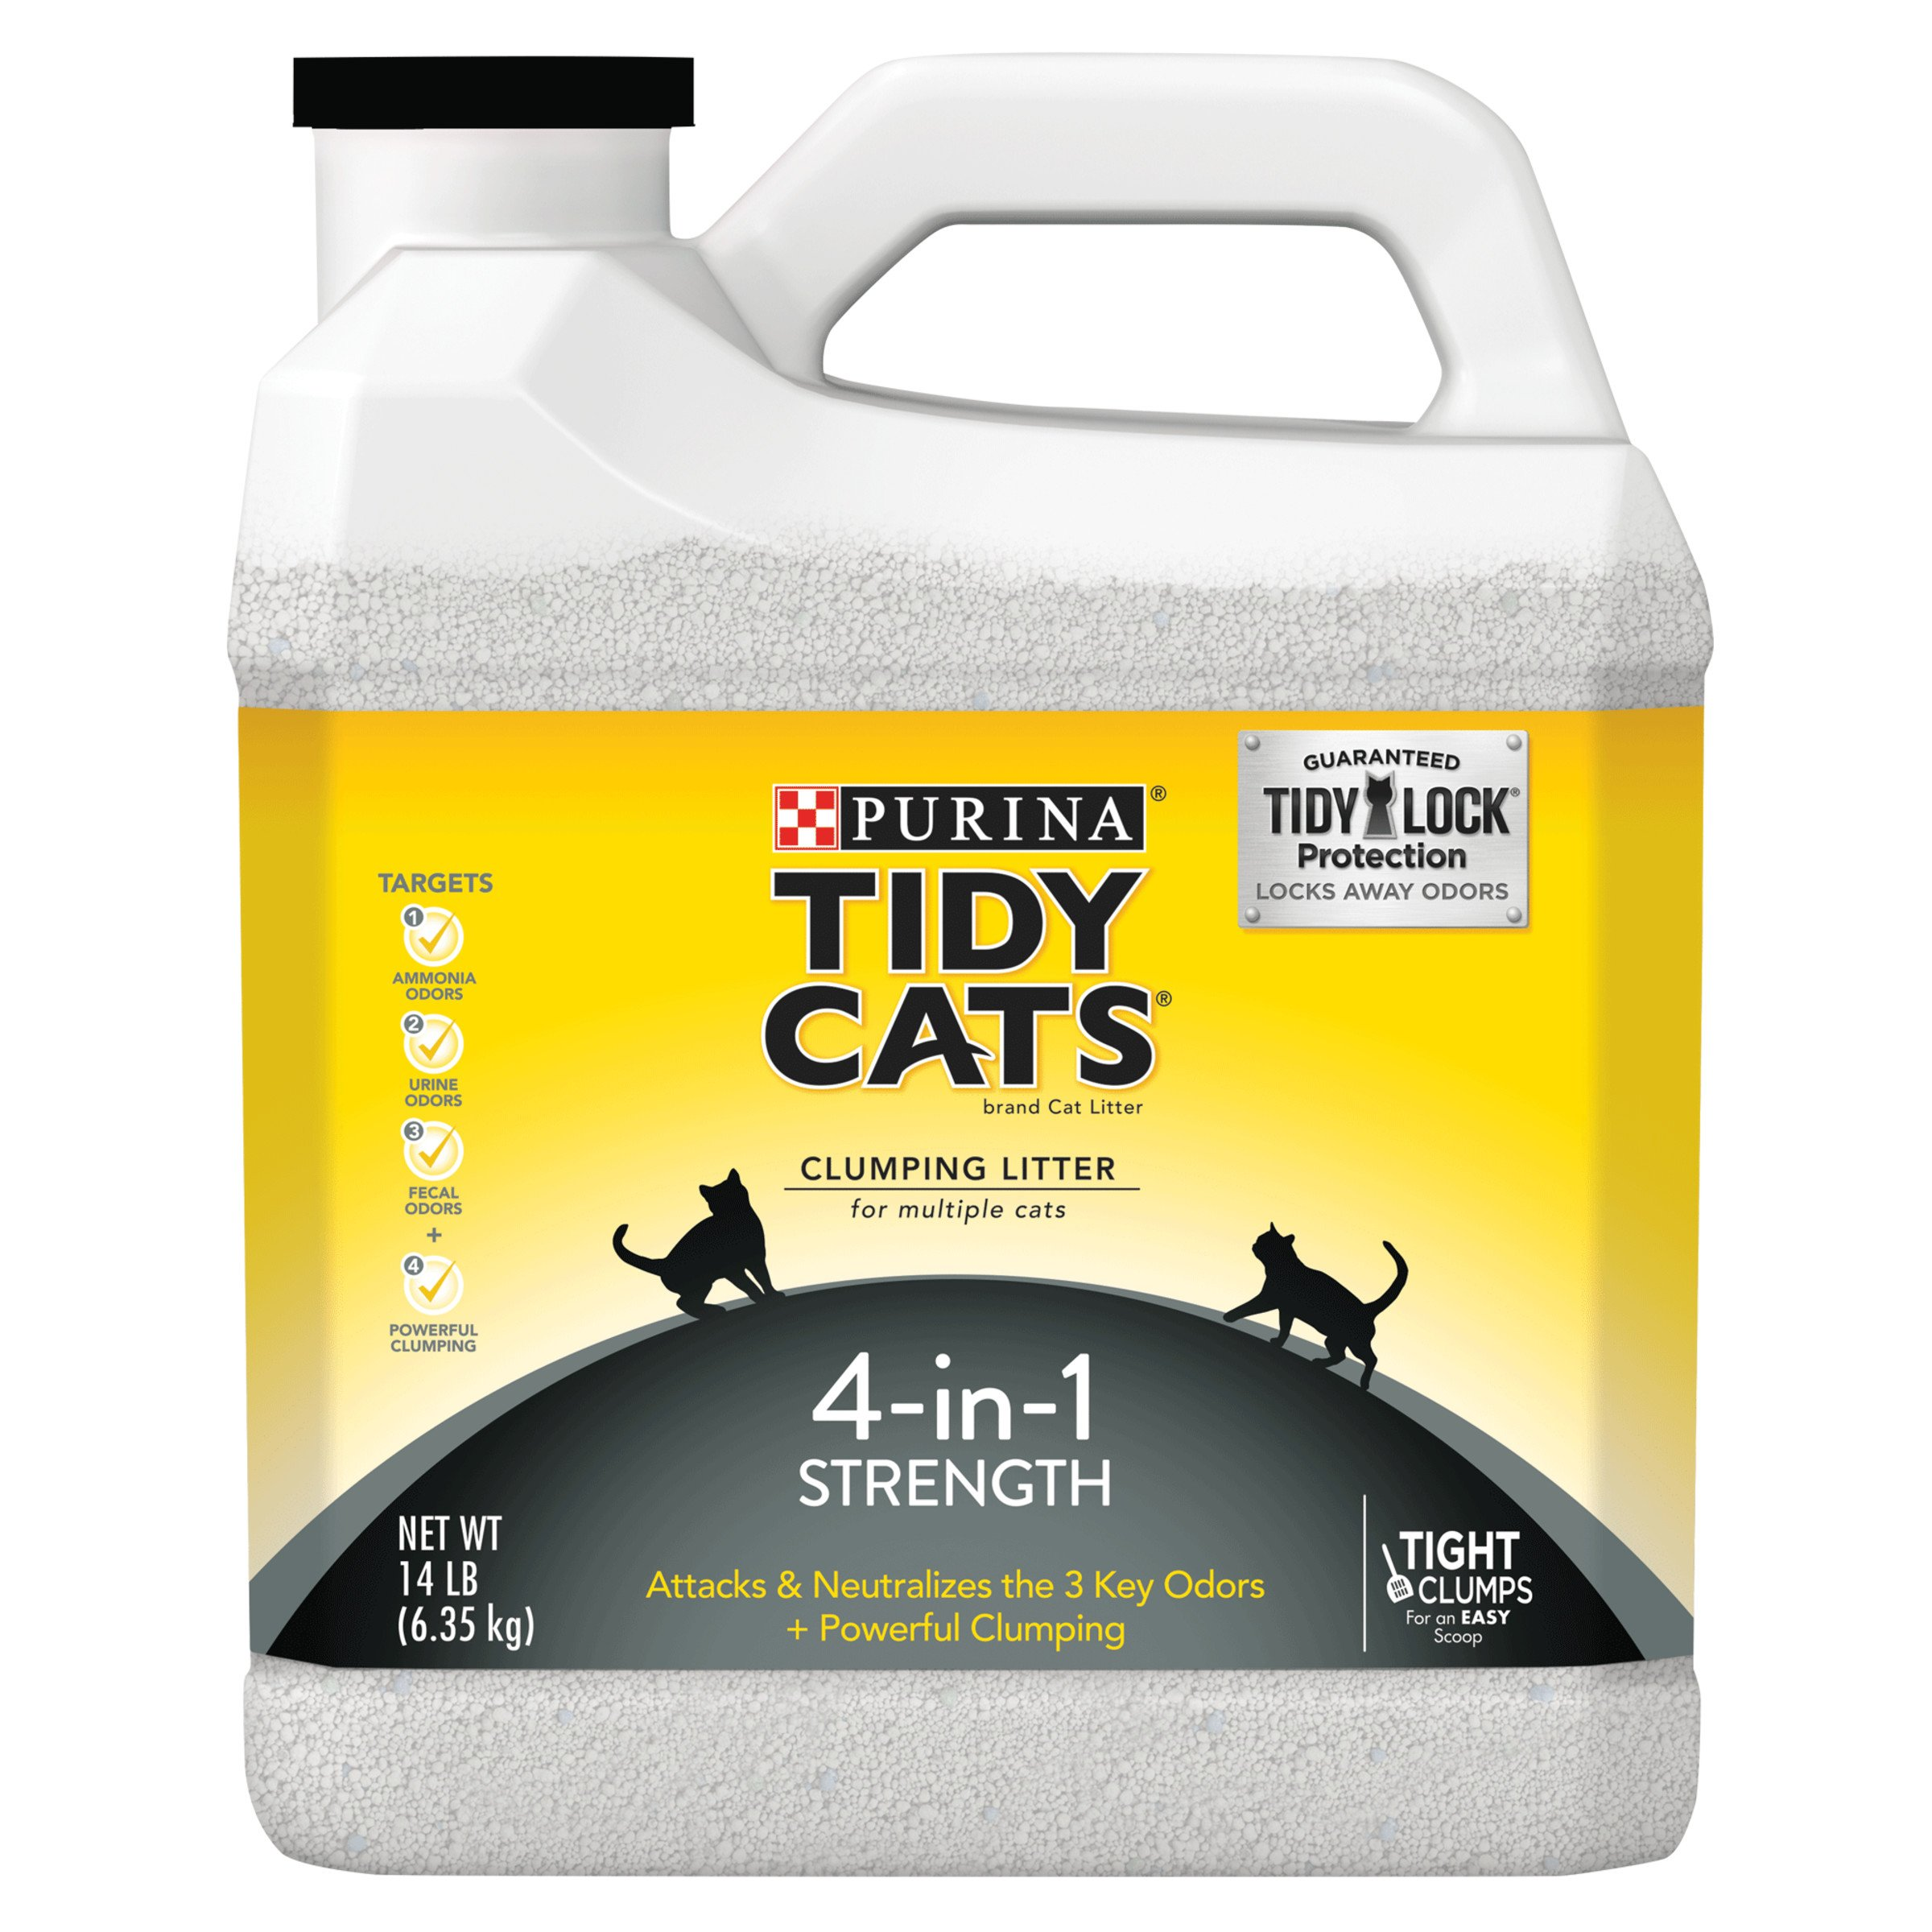 Purina Tidy Cats 4-in-1 Strength Clumping Cat Litter,(3) 14 lb. Jugs